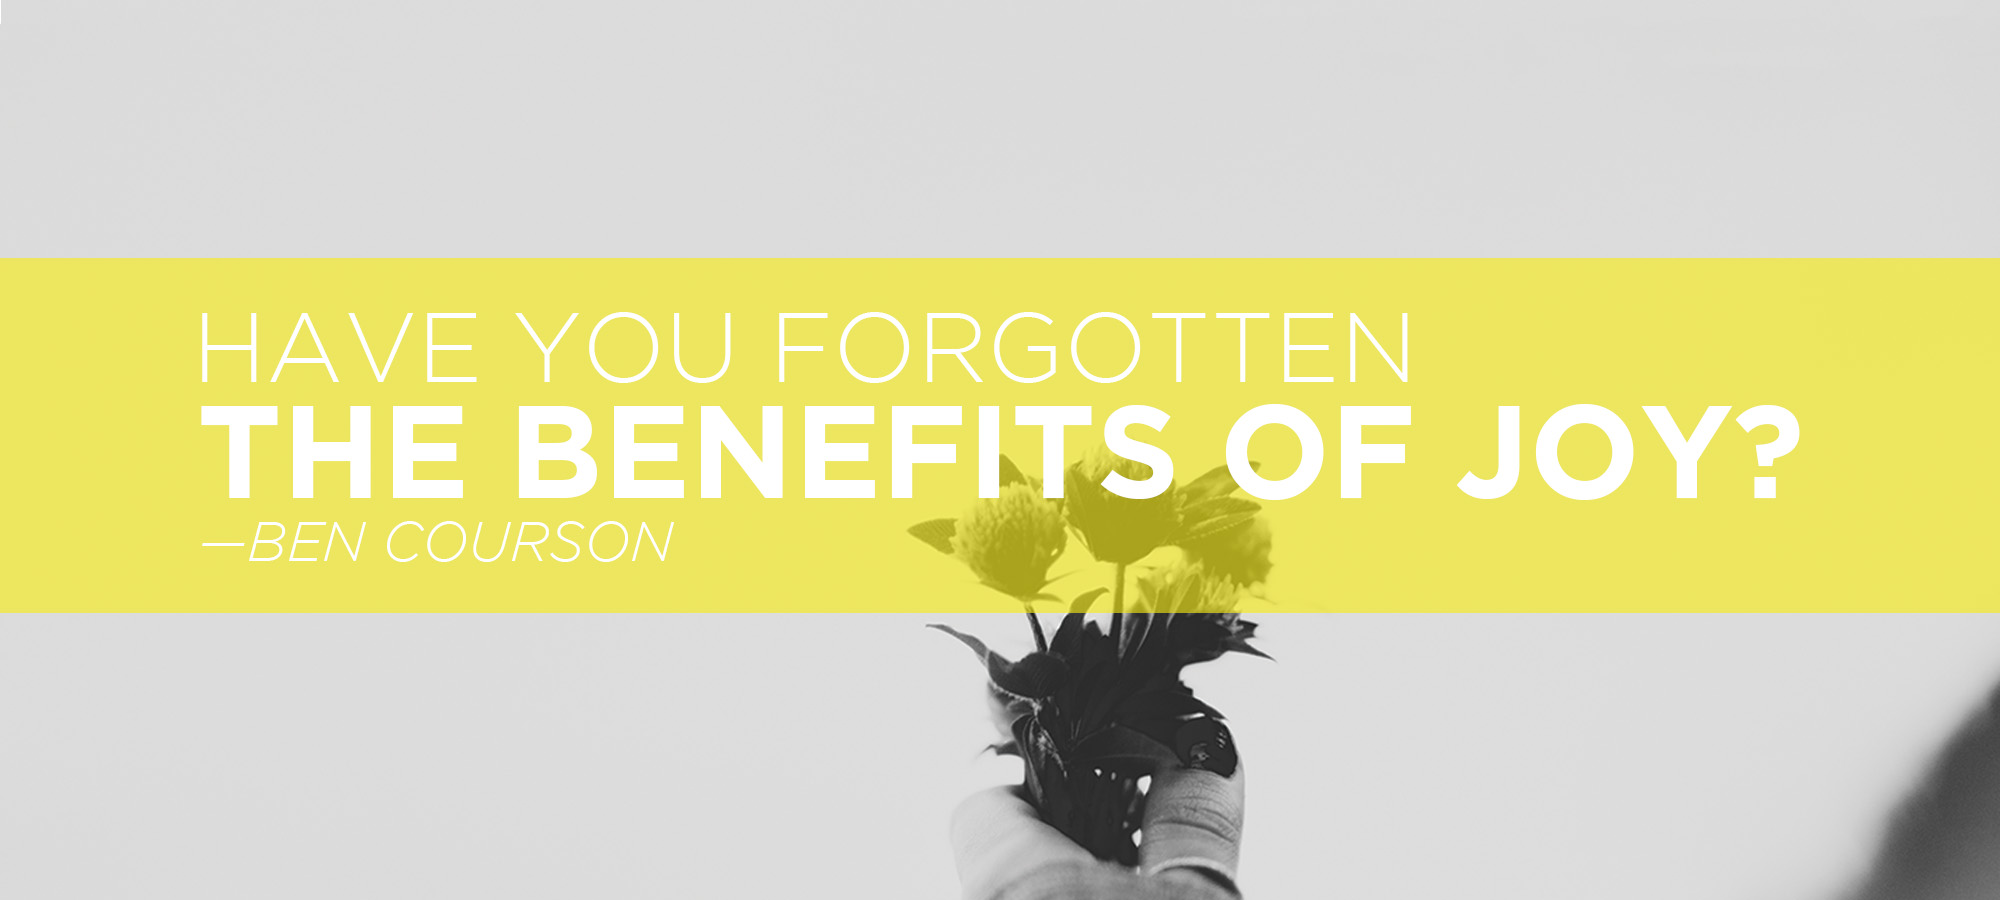 Have You Forgotten the Benefits of Joy?